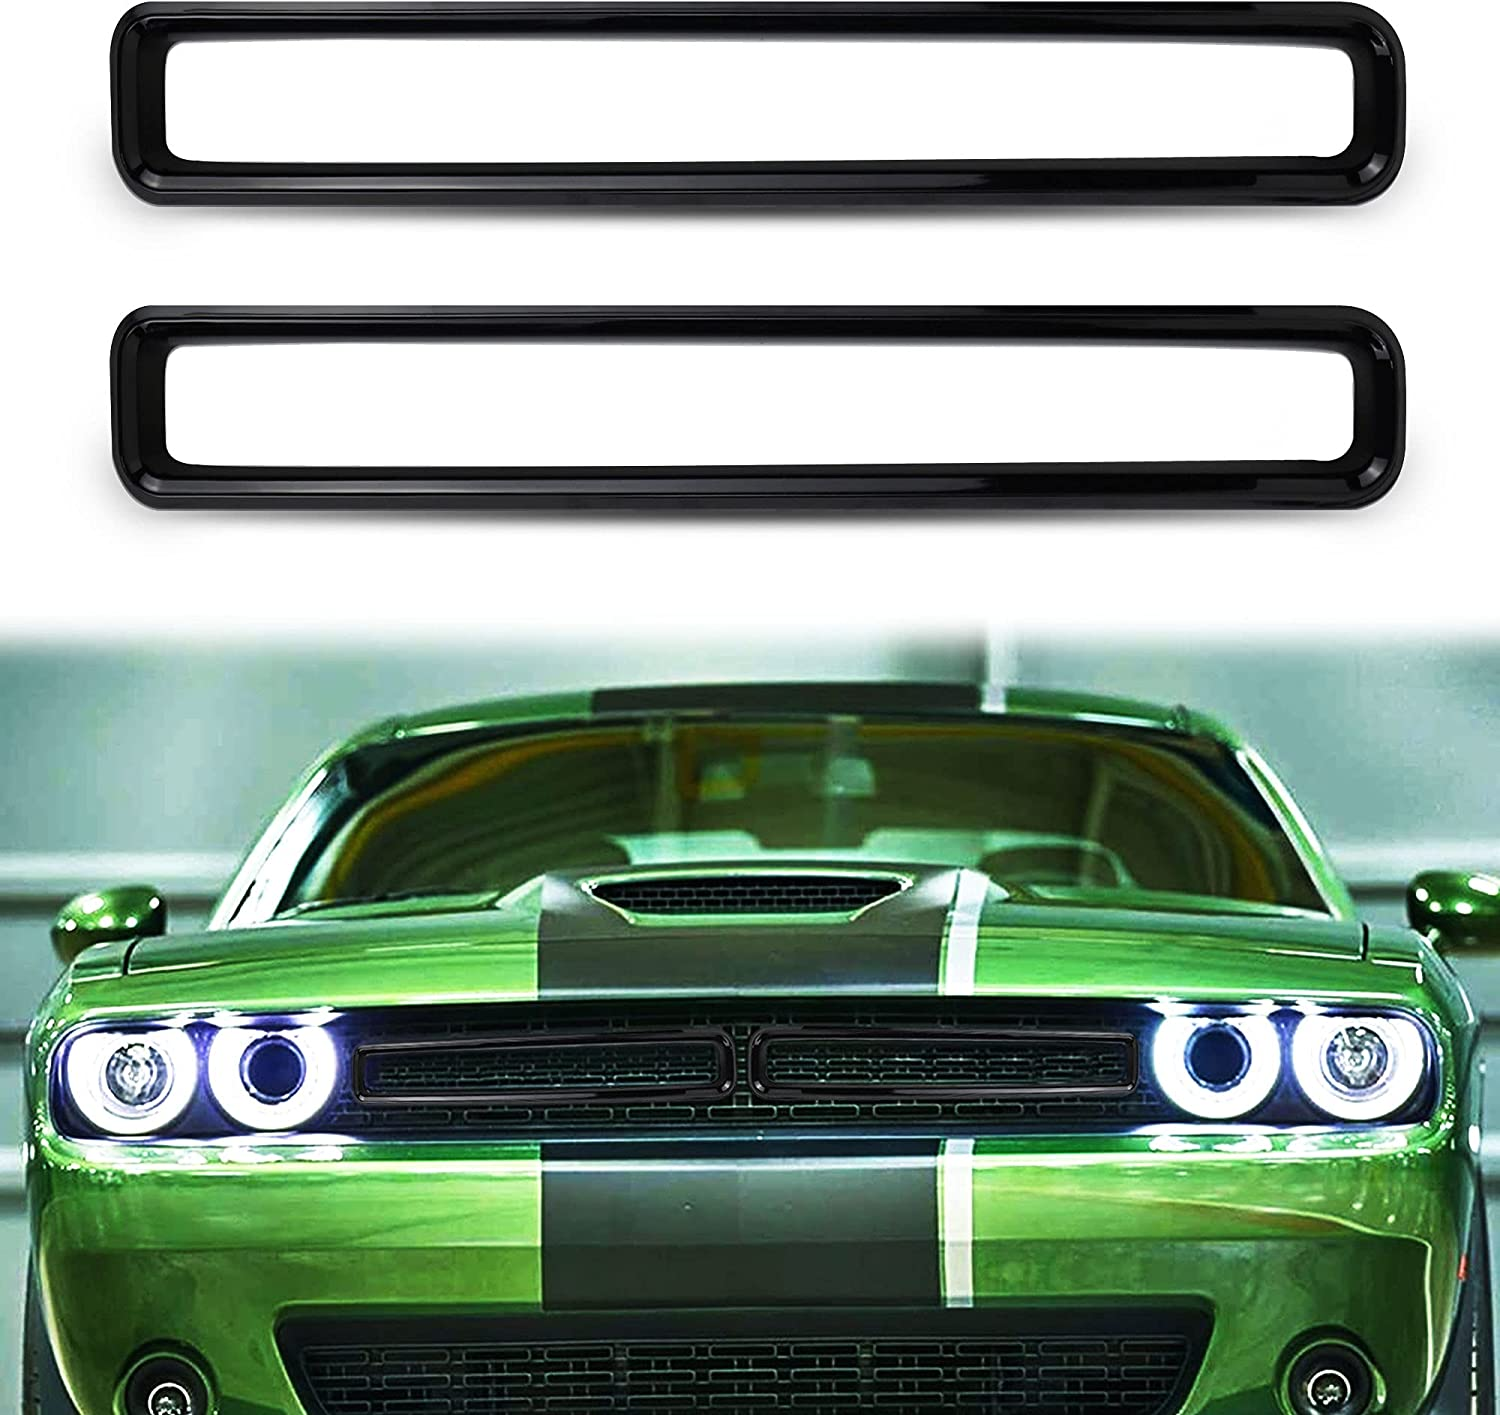 Hosile Black Albuquerque Mall Front Grill Max 73% OFF Mesh Inserts ABS Resin Grille Plastic